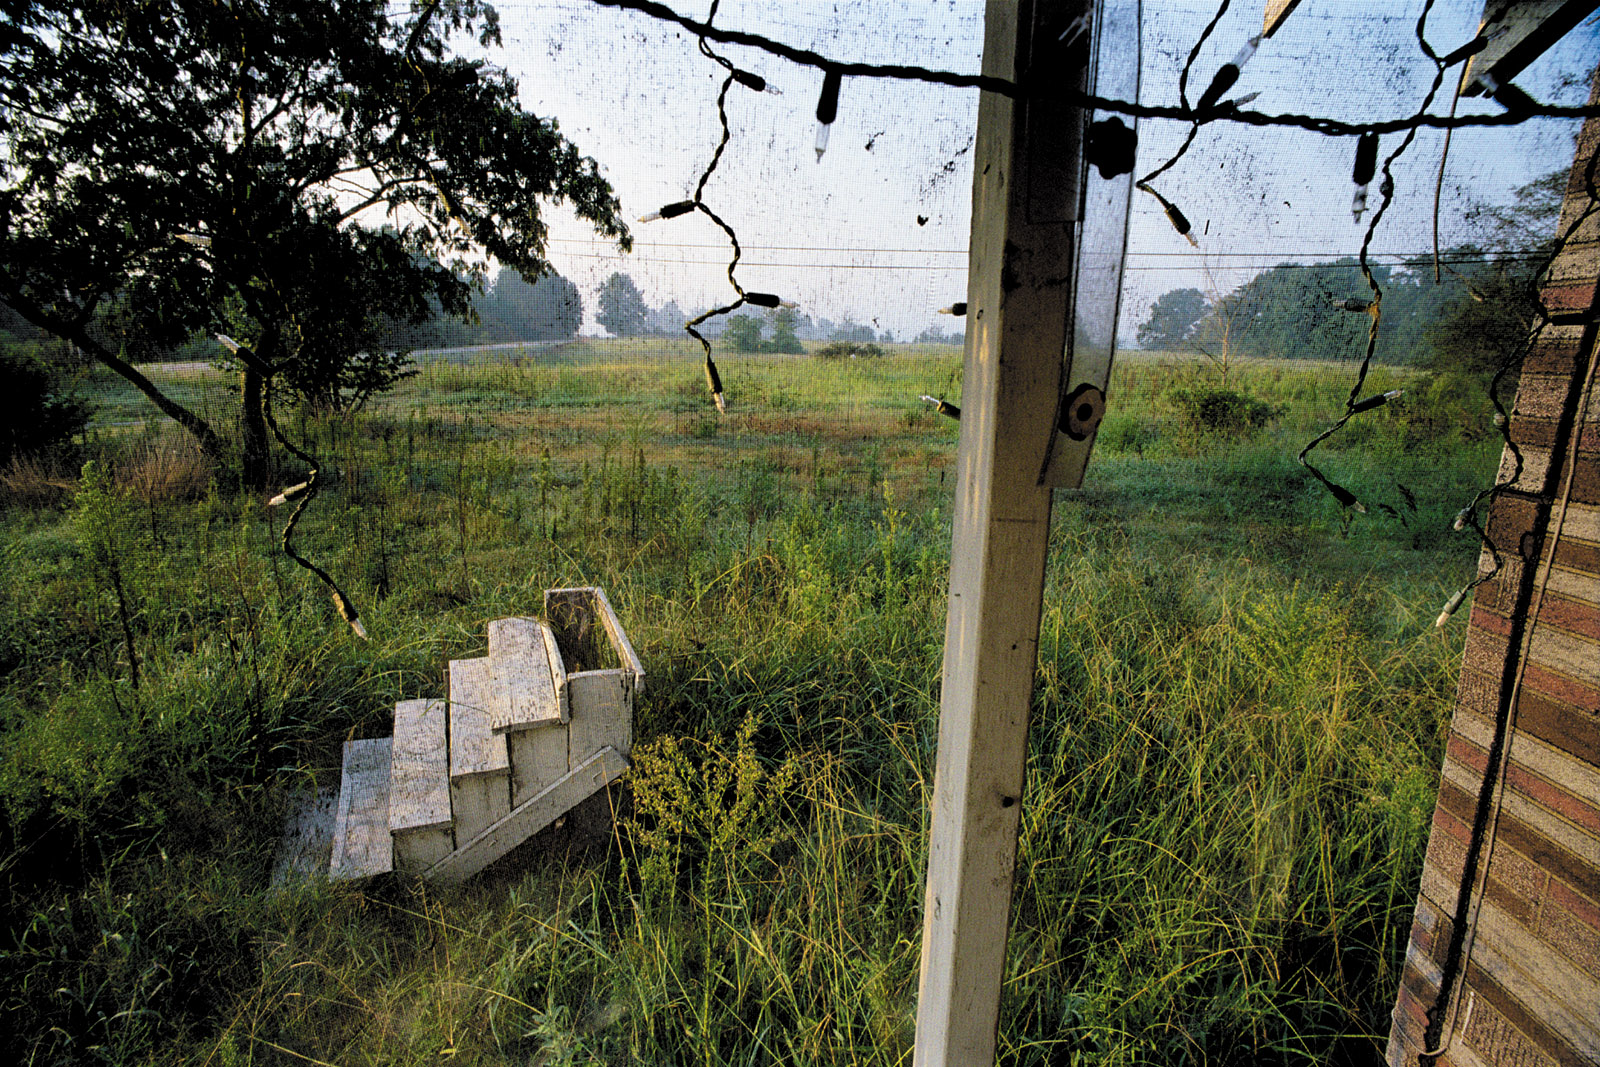 An abandoned farmhouse, 2005; photograph by Eugene Richards from The Run-On of Time, the catalog of a recent exhibition that originated at the George Eastman Museum and the Nelson-Atkins Museum of Art. It is distributed by Yale University Press.